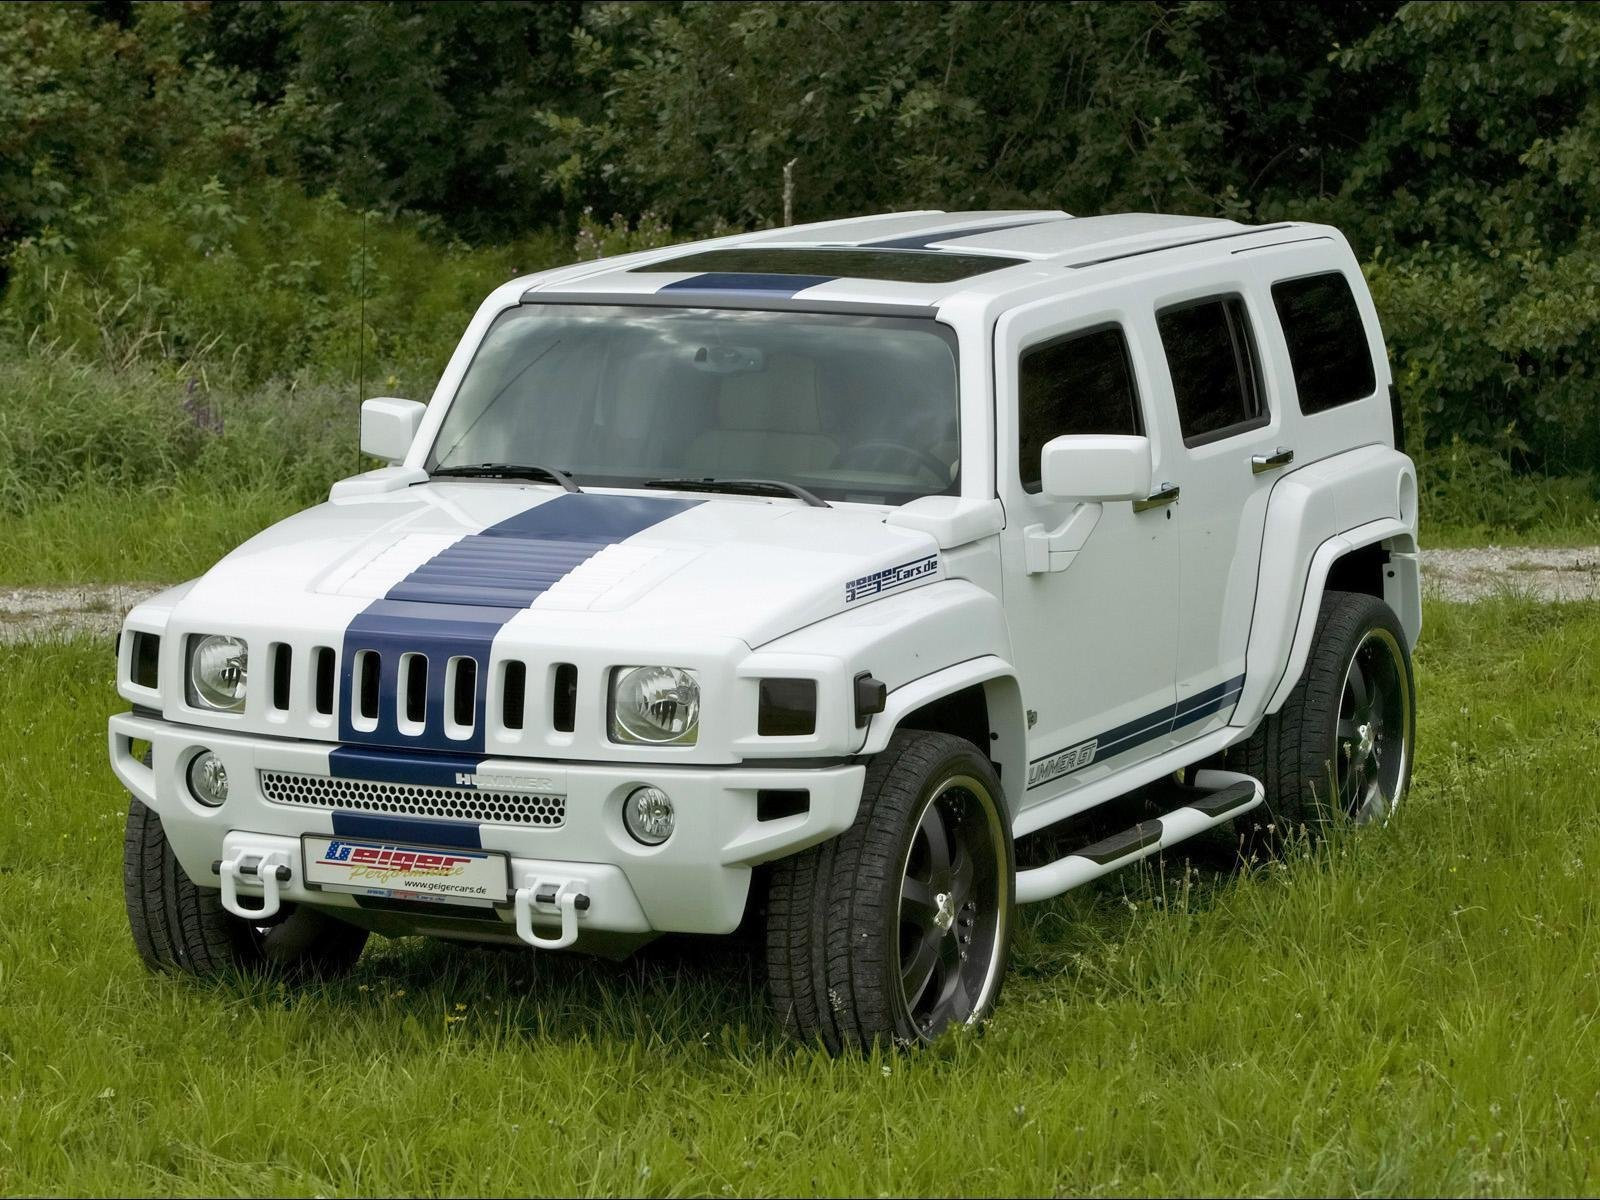 2008 hummer h3 gt by geigercars review top speed. Black Bedroom Furniture Sets. Home Design Ideas